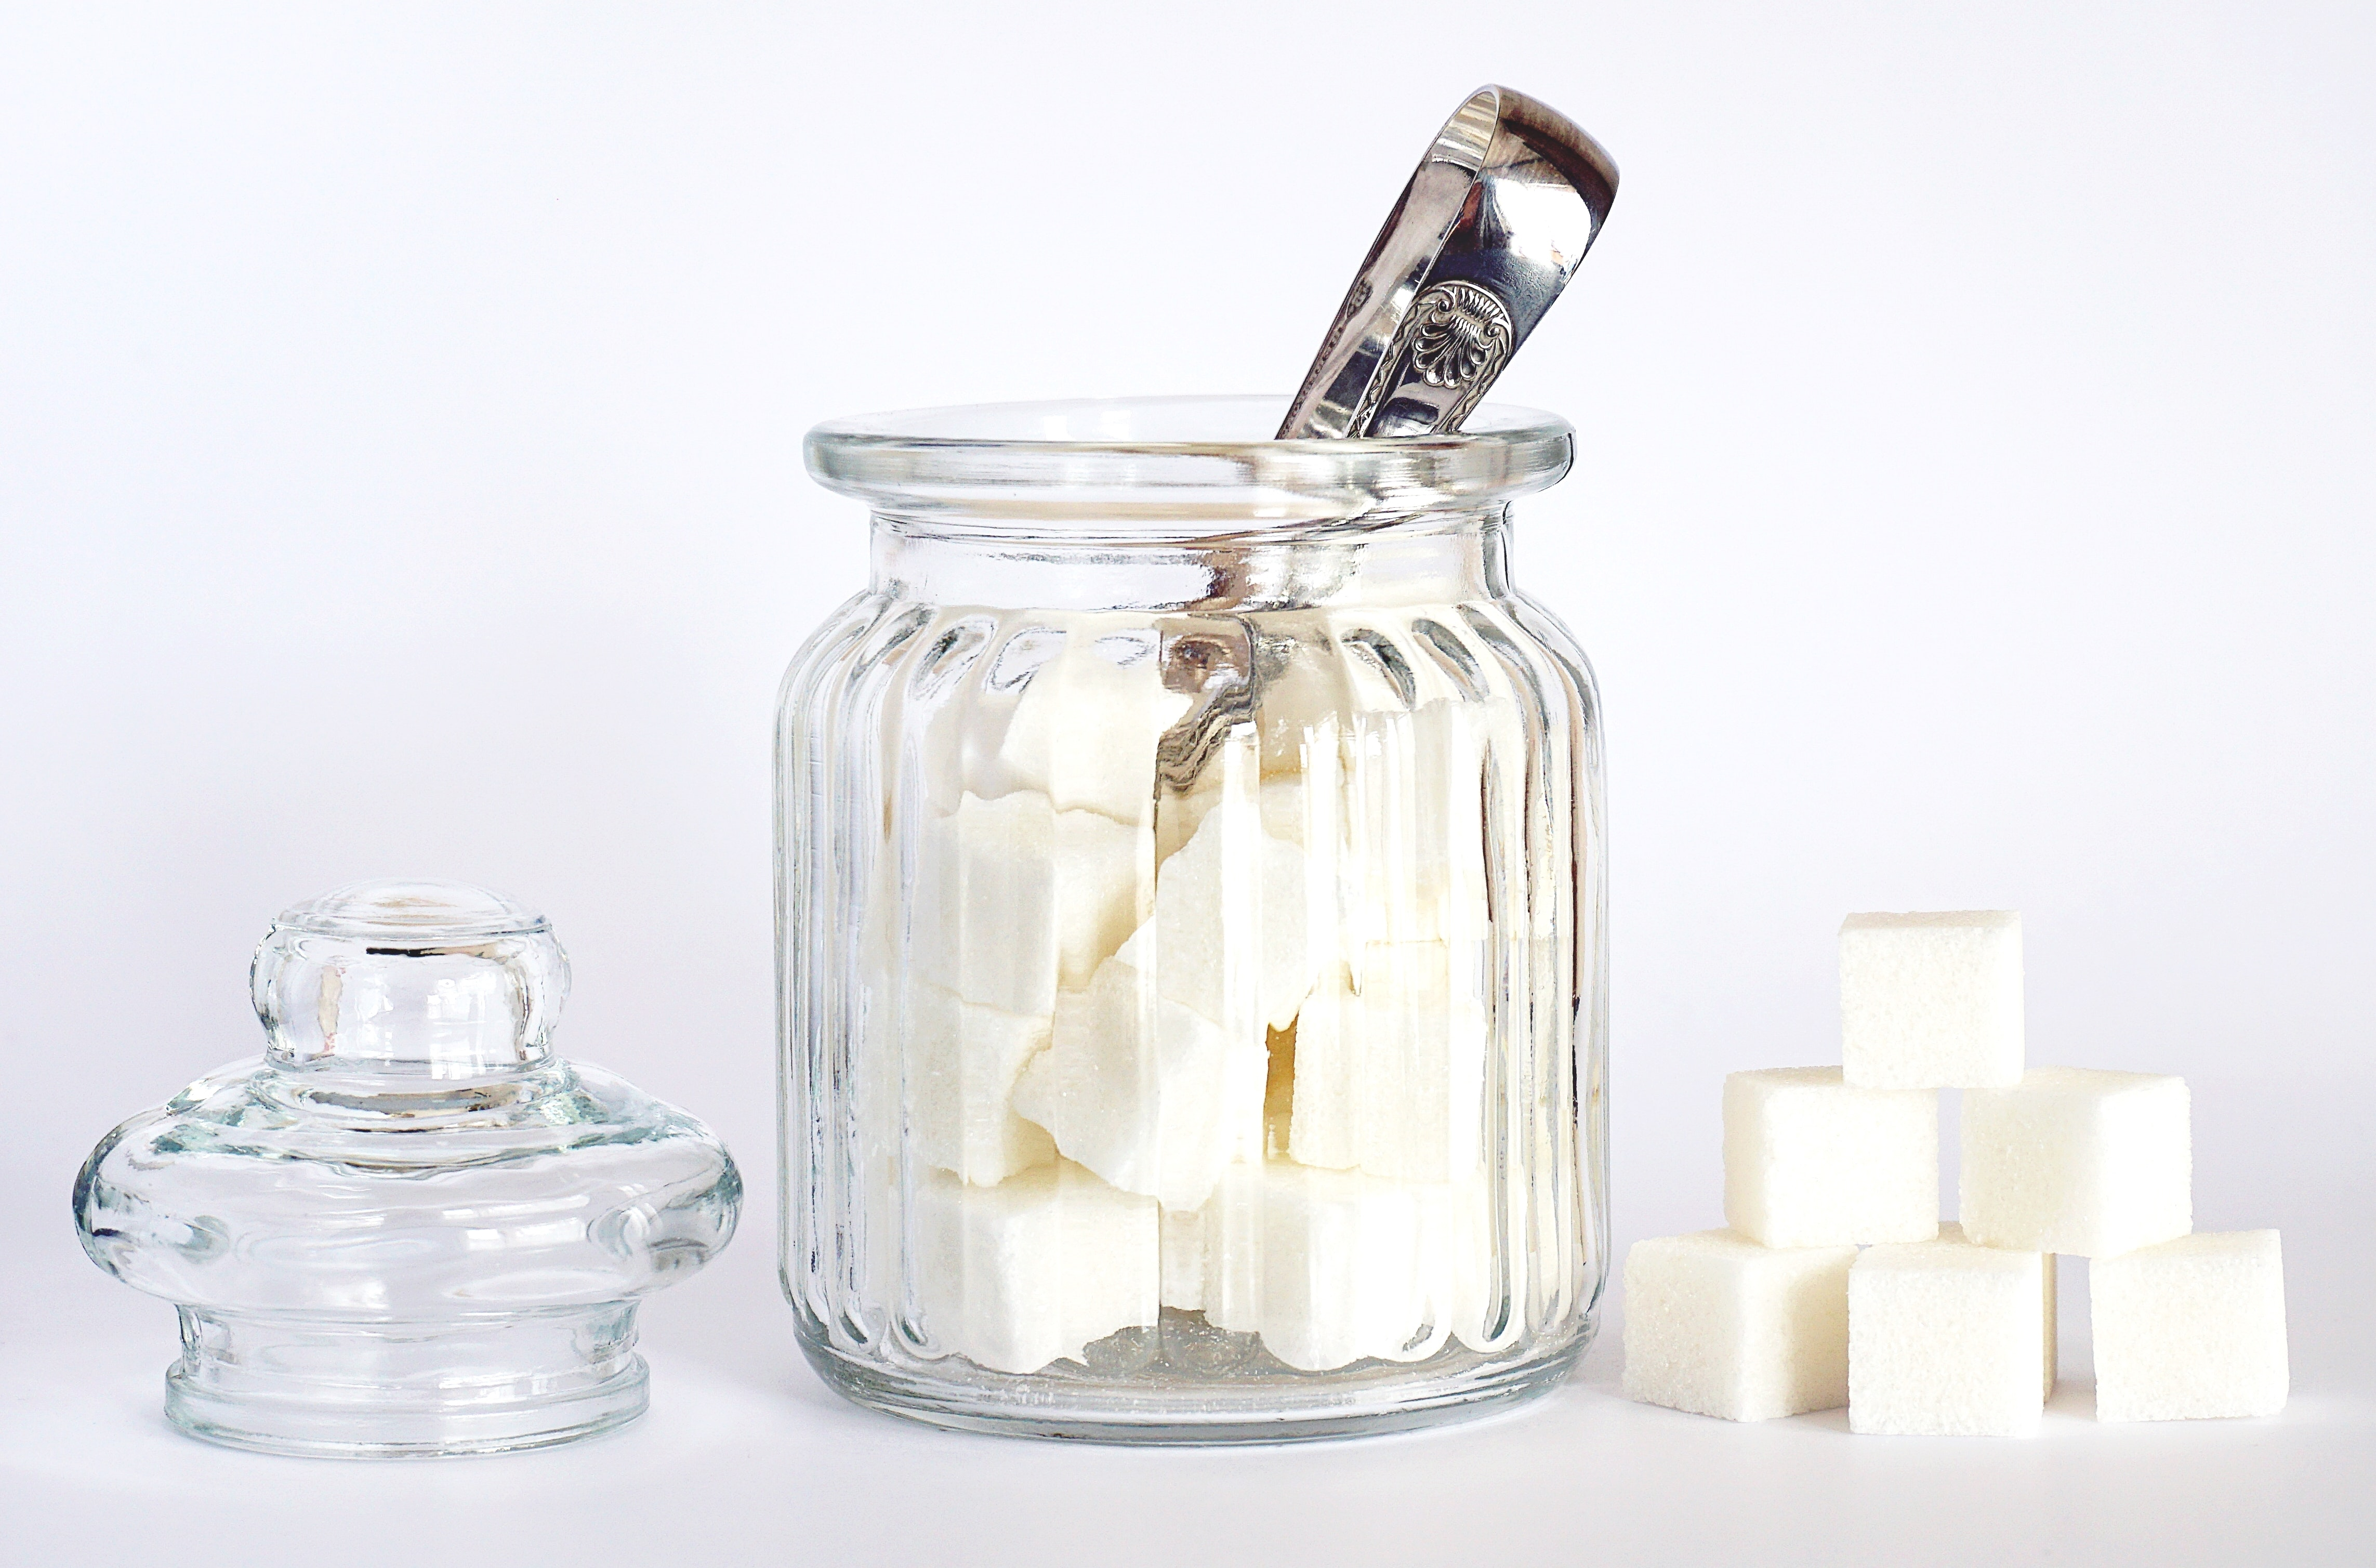 Sugar cubes as an example of what may contribute to the development of diabetes.